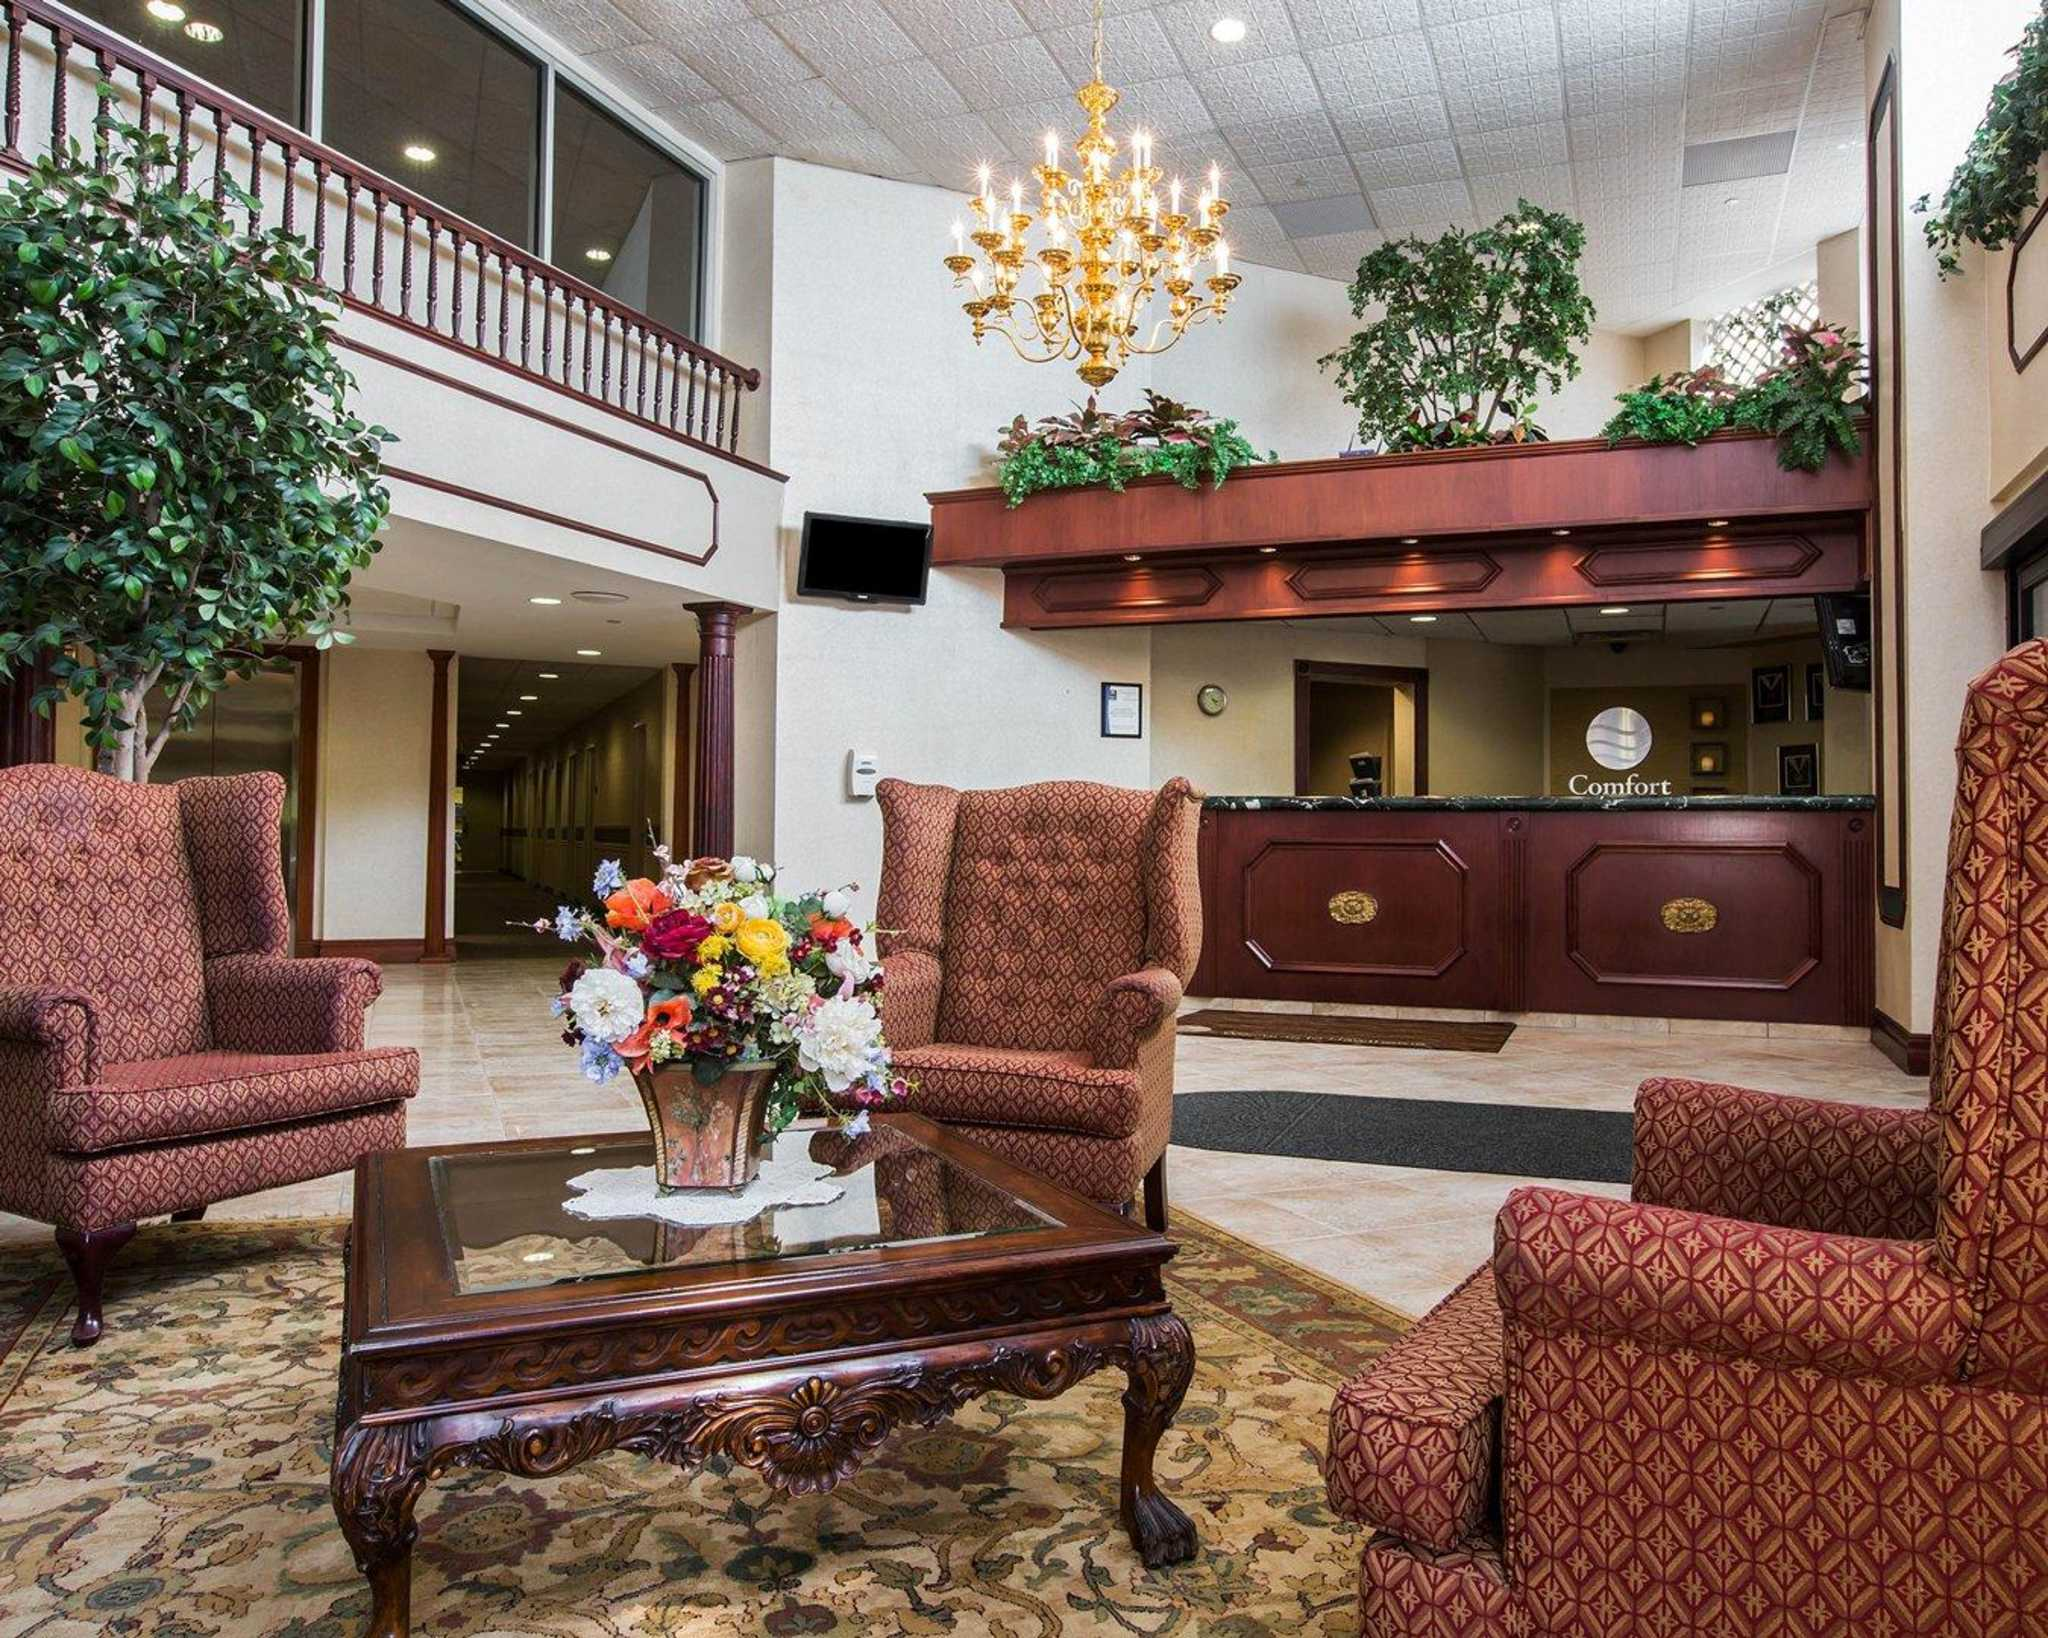 Comfort Inn Amp Suites Hawthorne Ny Business Directory